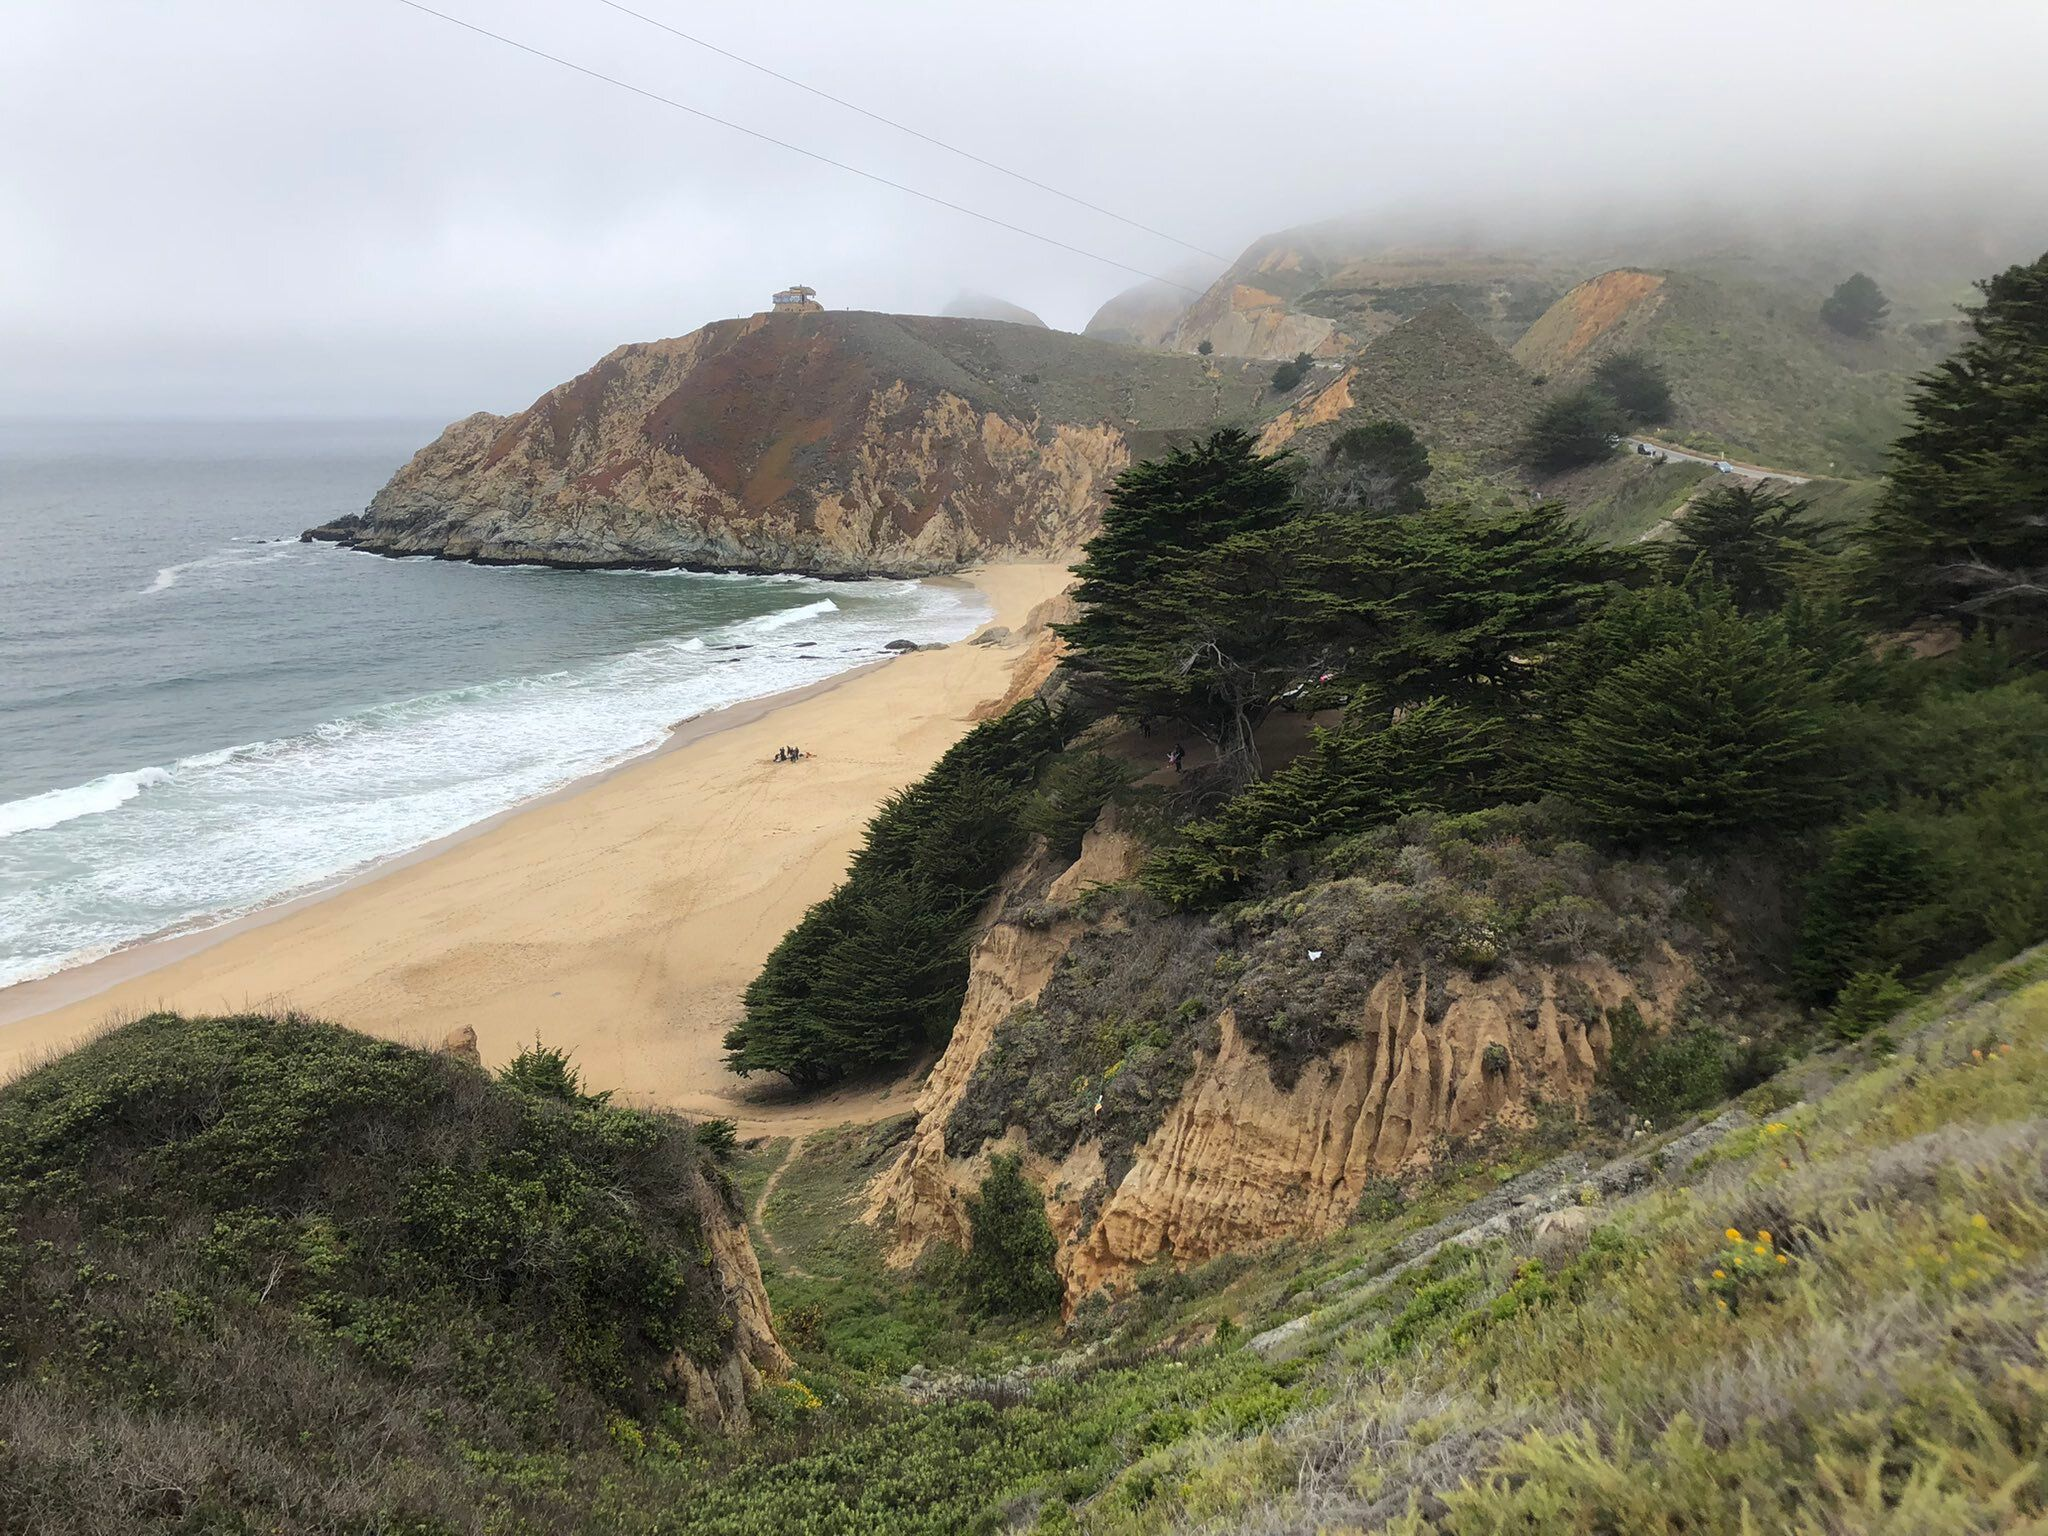 A man was swimming off of Grey Whale Cove State Beach, just south of San Francisco, on Saturday when he was bitten by a great